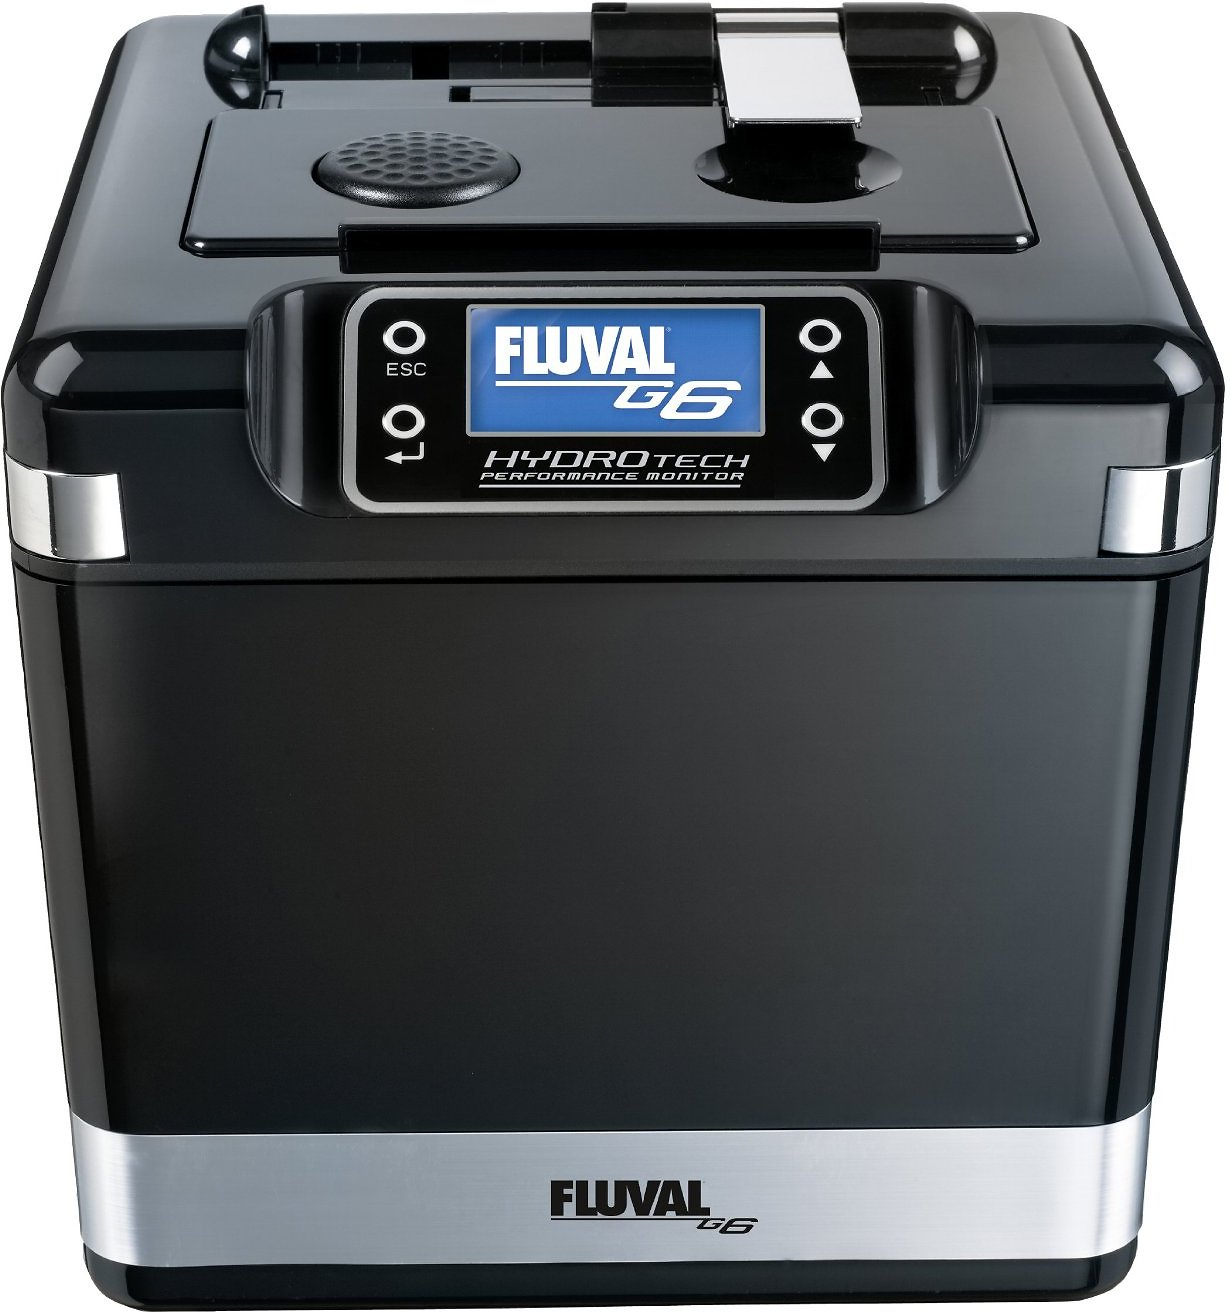 Fluval advanced aquarium filtration system size g6 for Fish filtration system